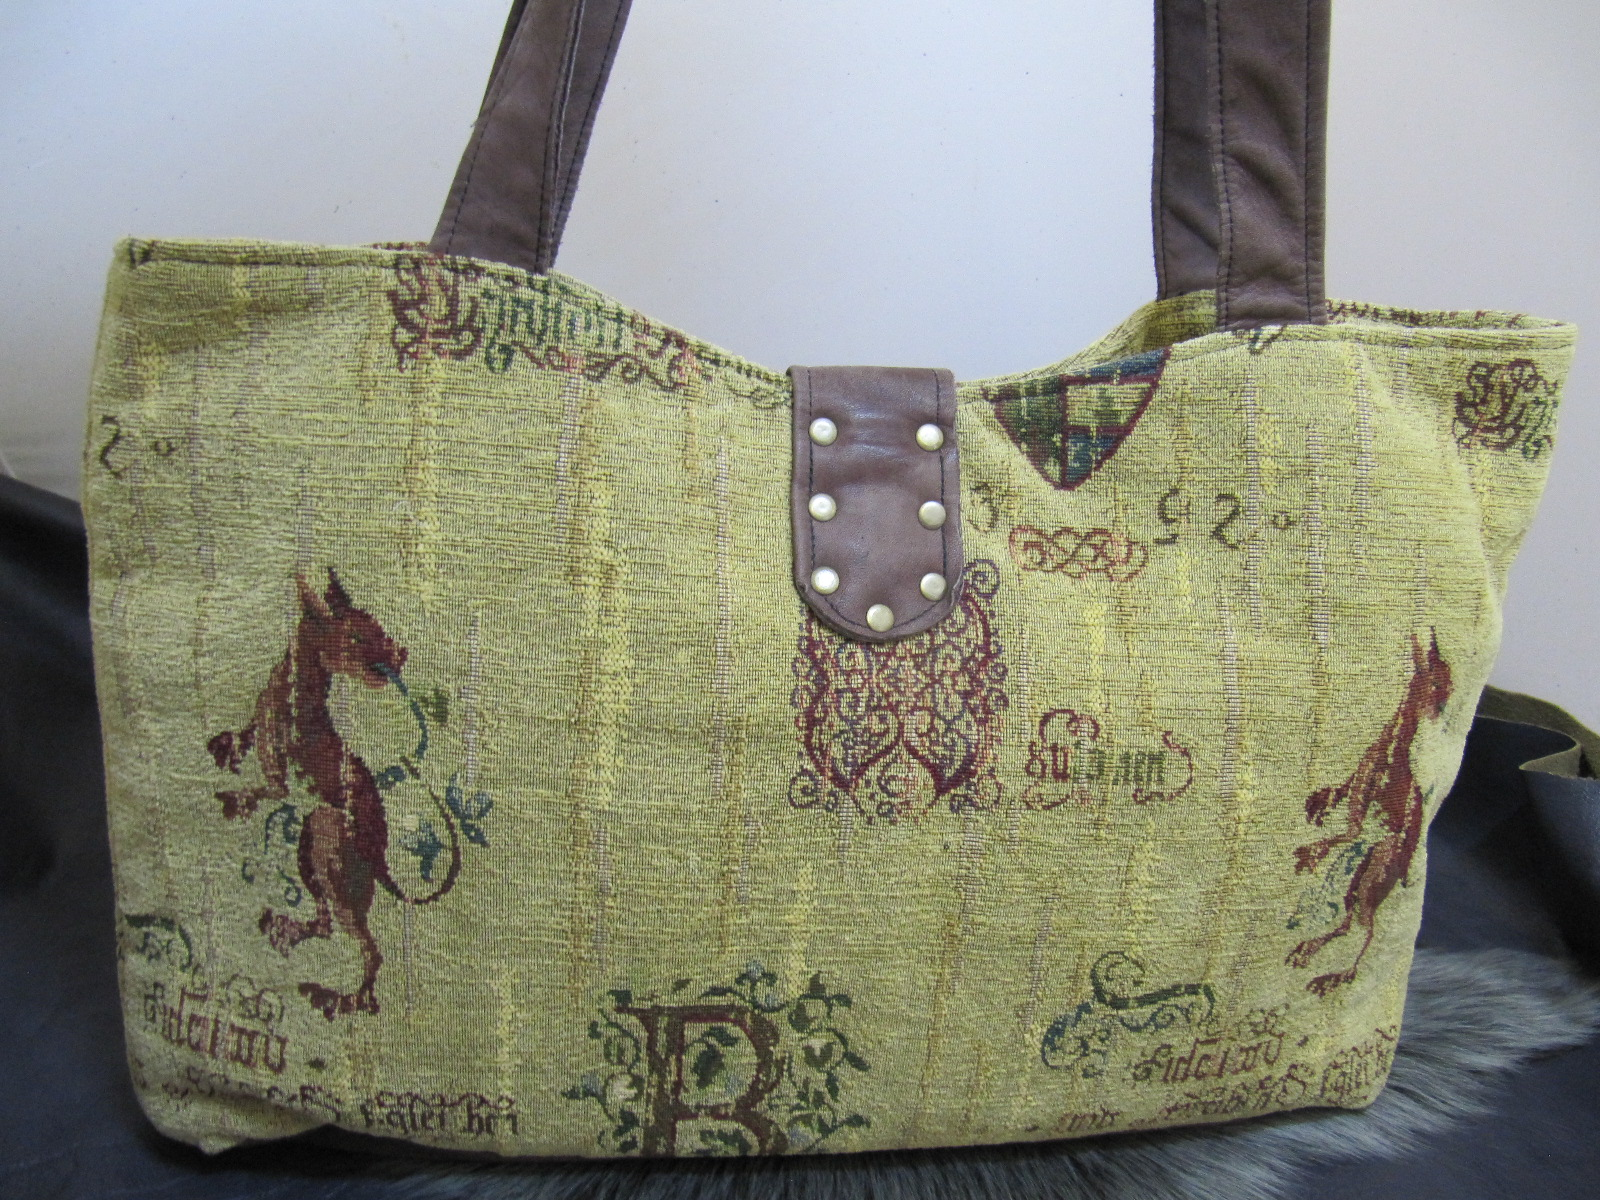 Medieval fabric and leather shopper